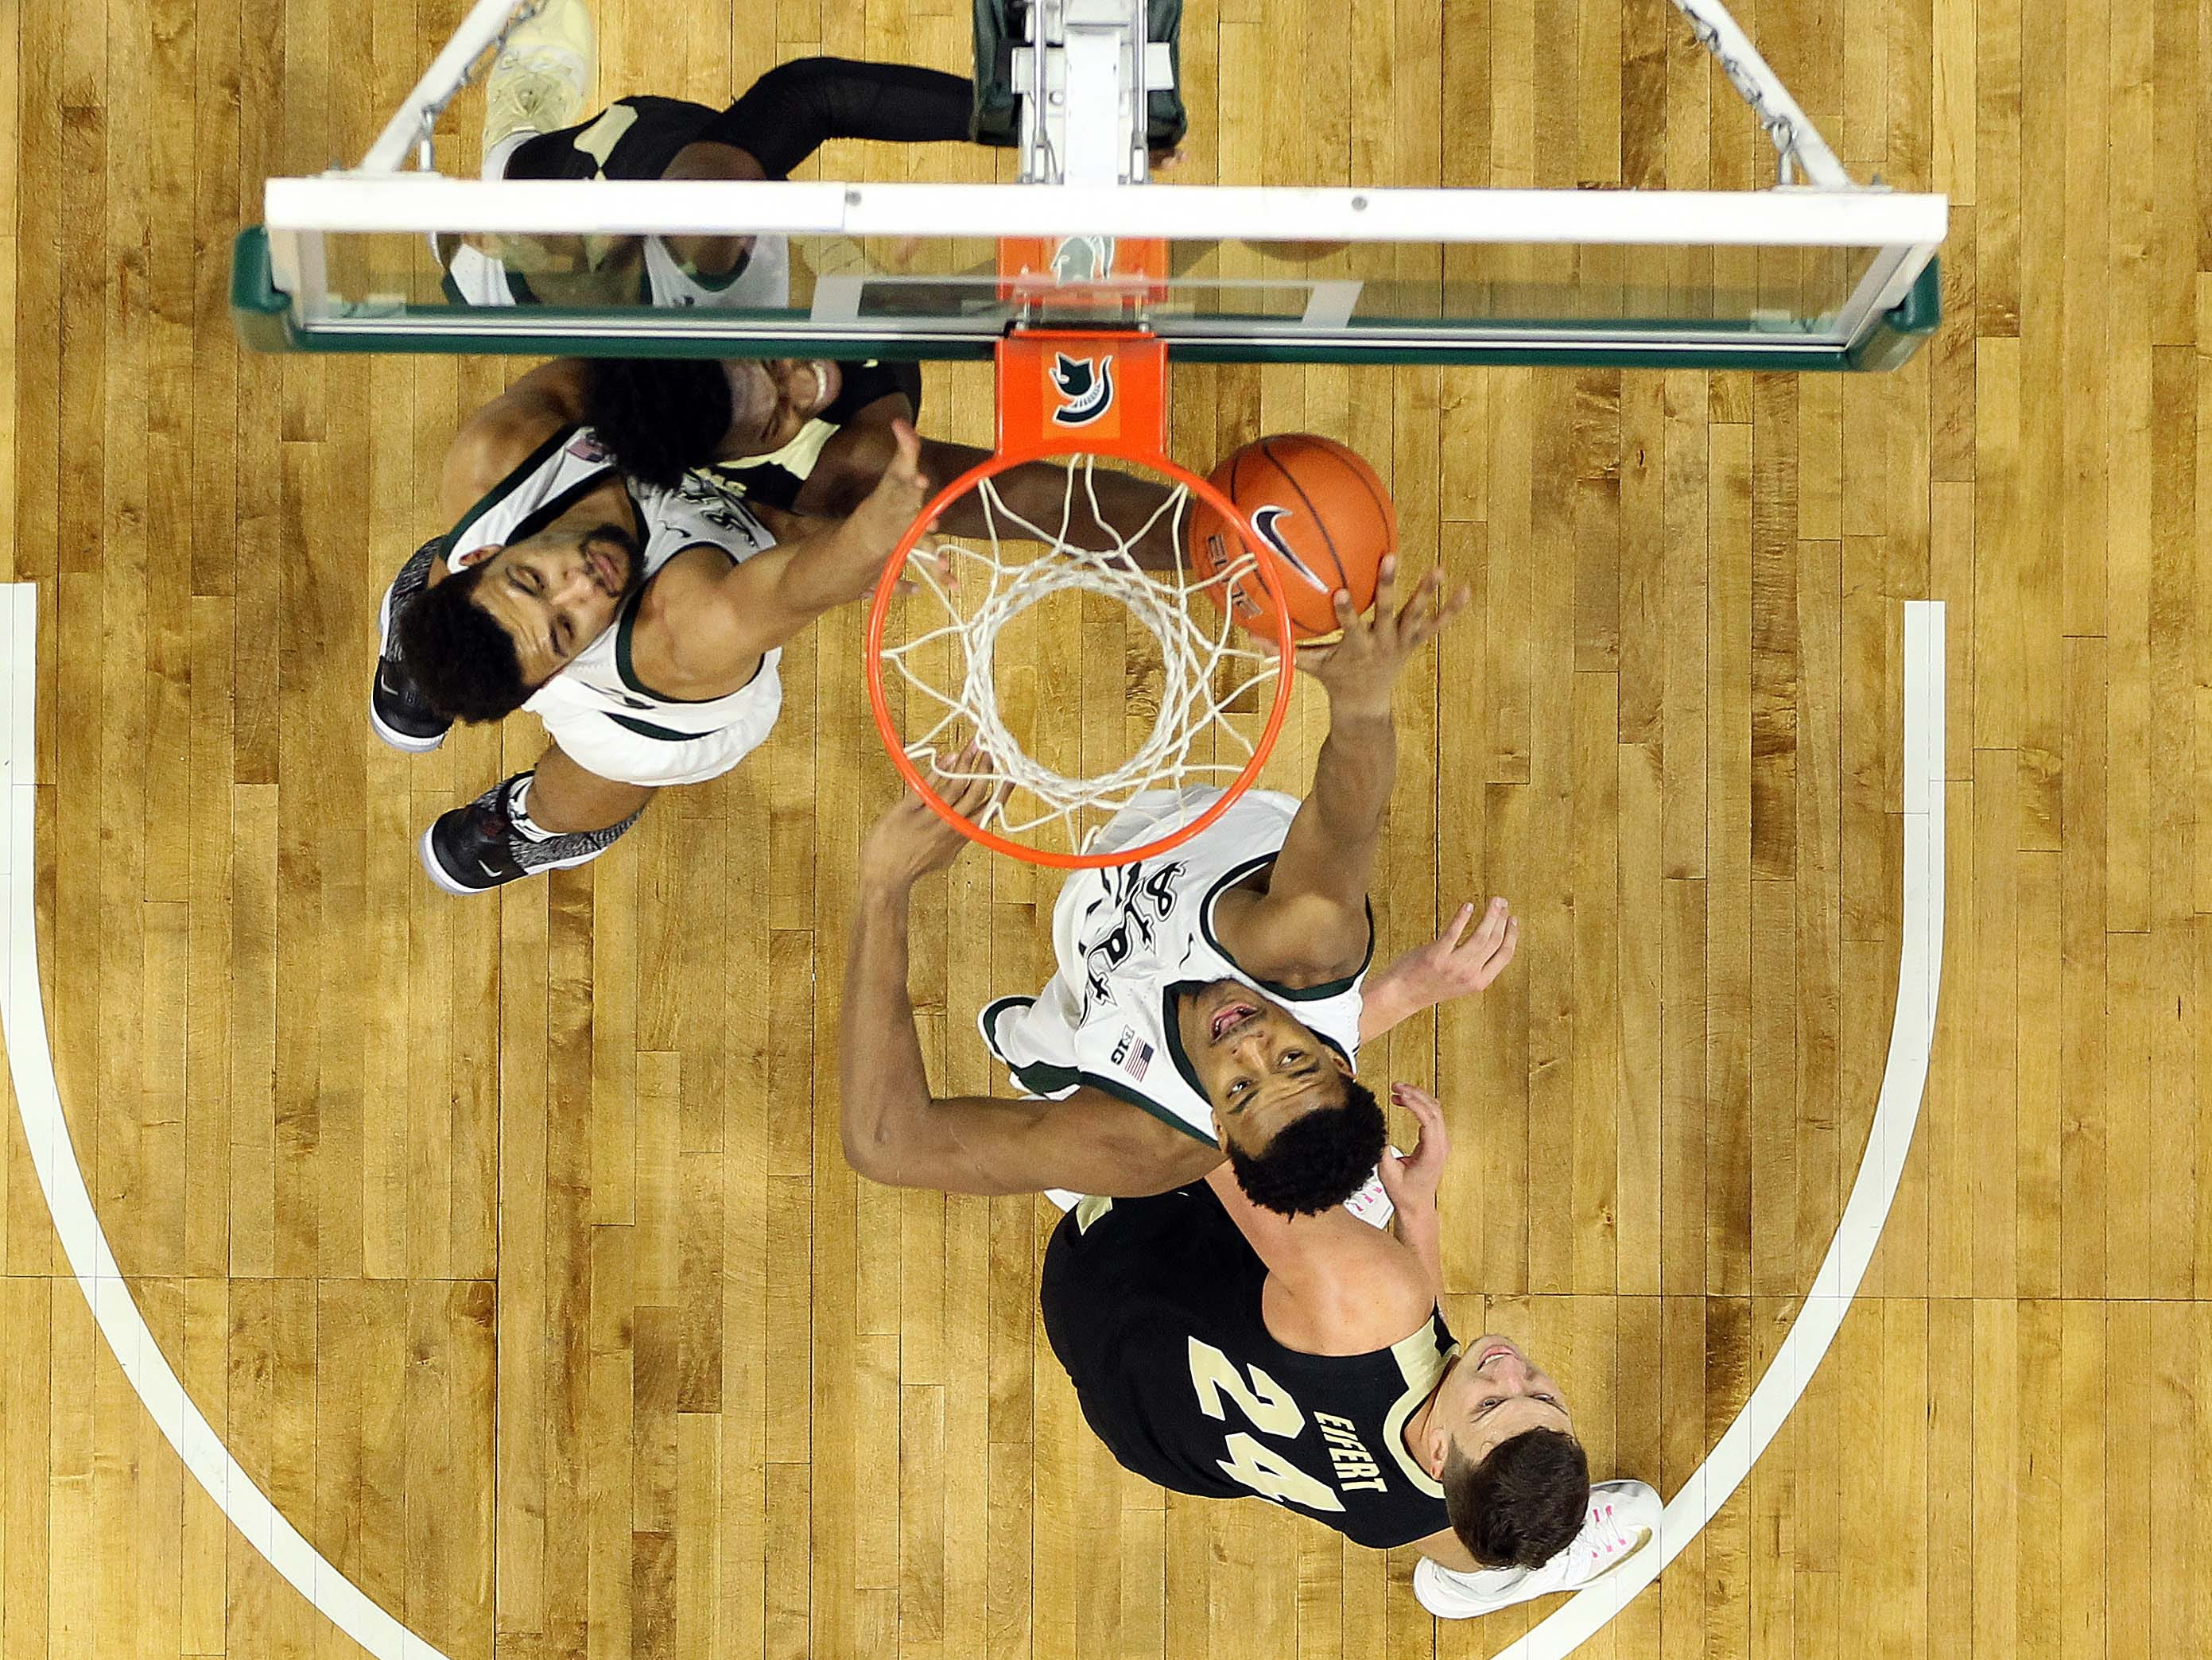 Jan 8, 2019; East Lansing, MI, USA; Michigan State Spartans forward Xavier Tillman (23) blocks the shot of Purdue Boilermakers forward Trevion Williams (50) during the second half of a game at the Breslin Center. Mandatory Credit: Mike Carter-USA TODAY Sports